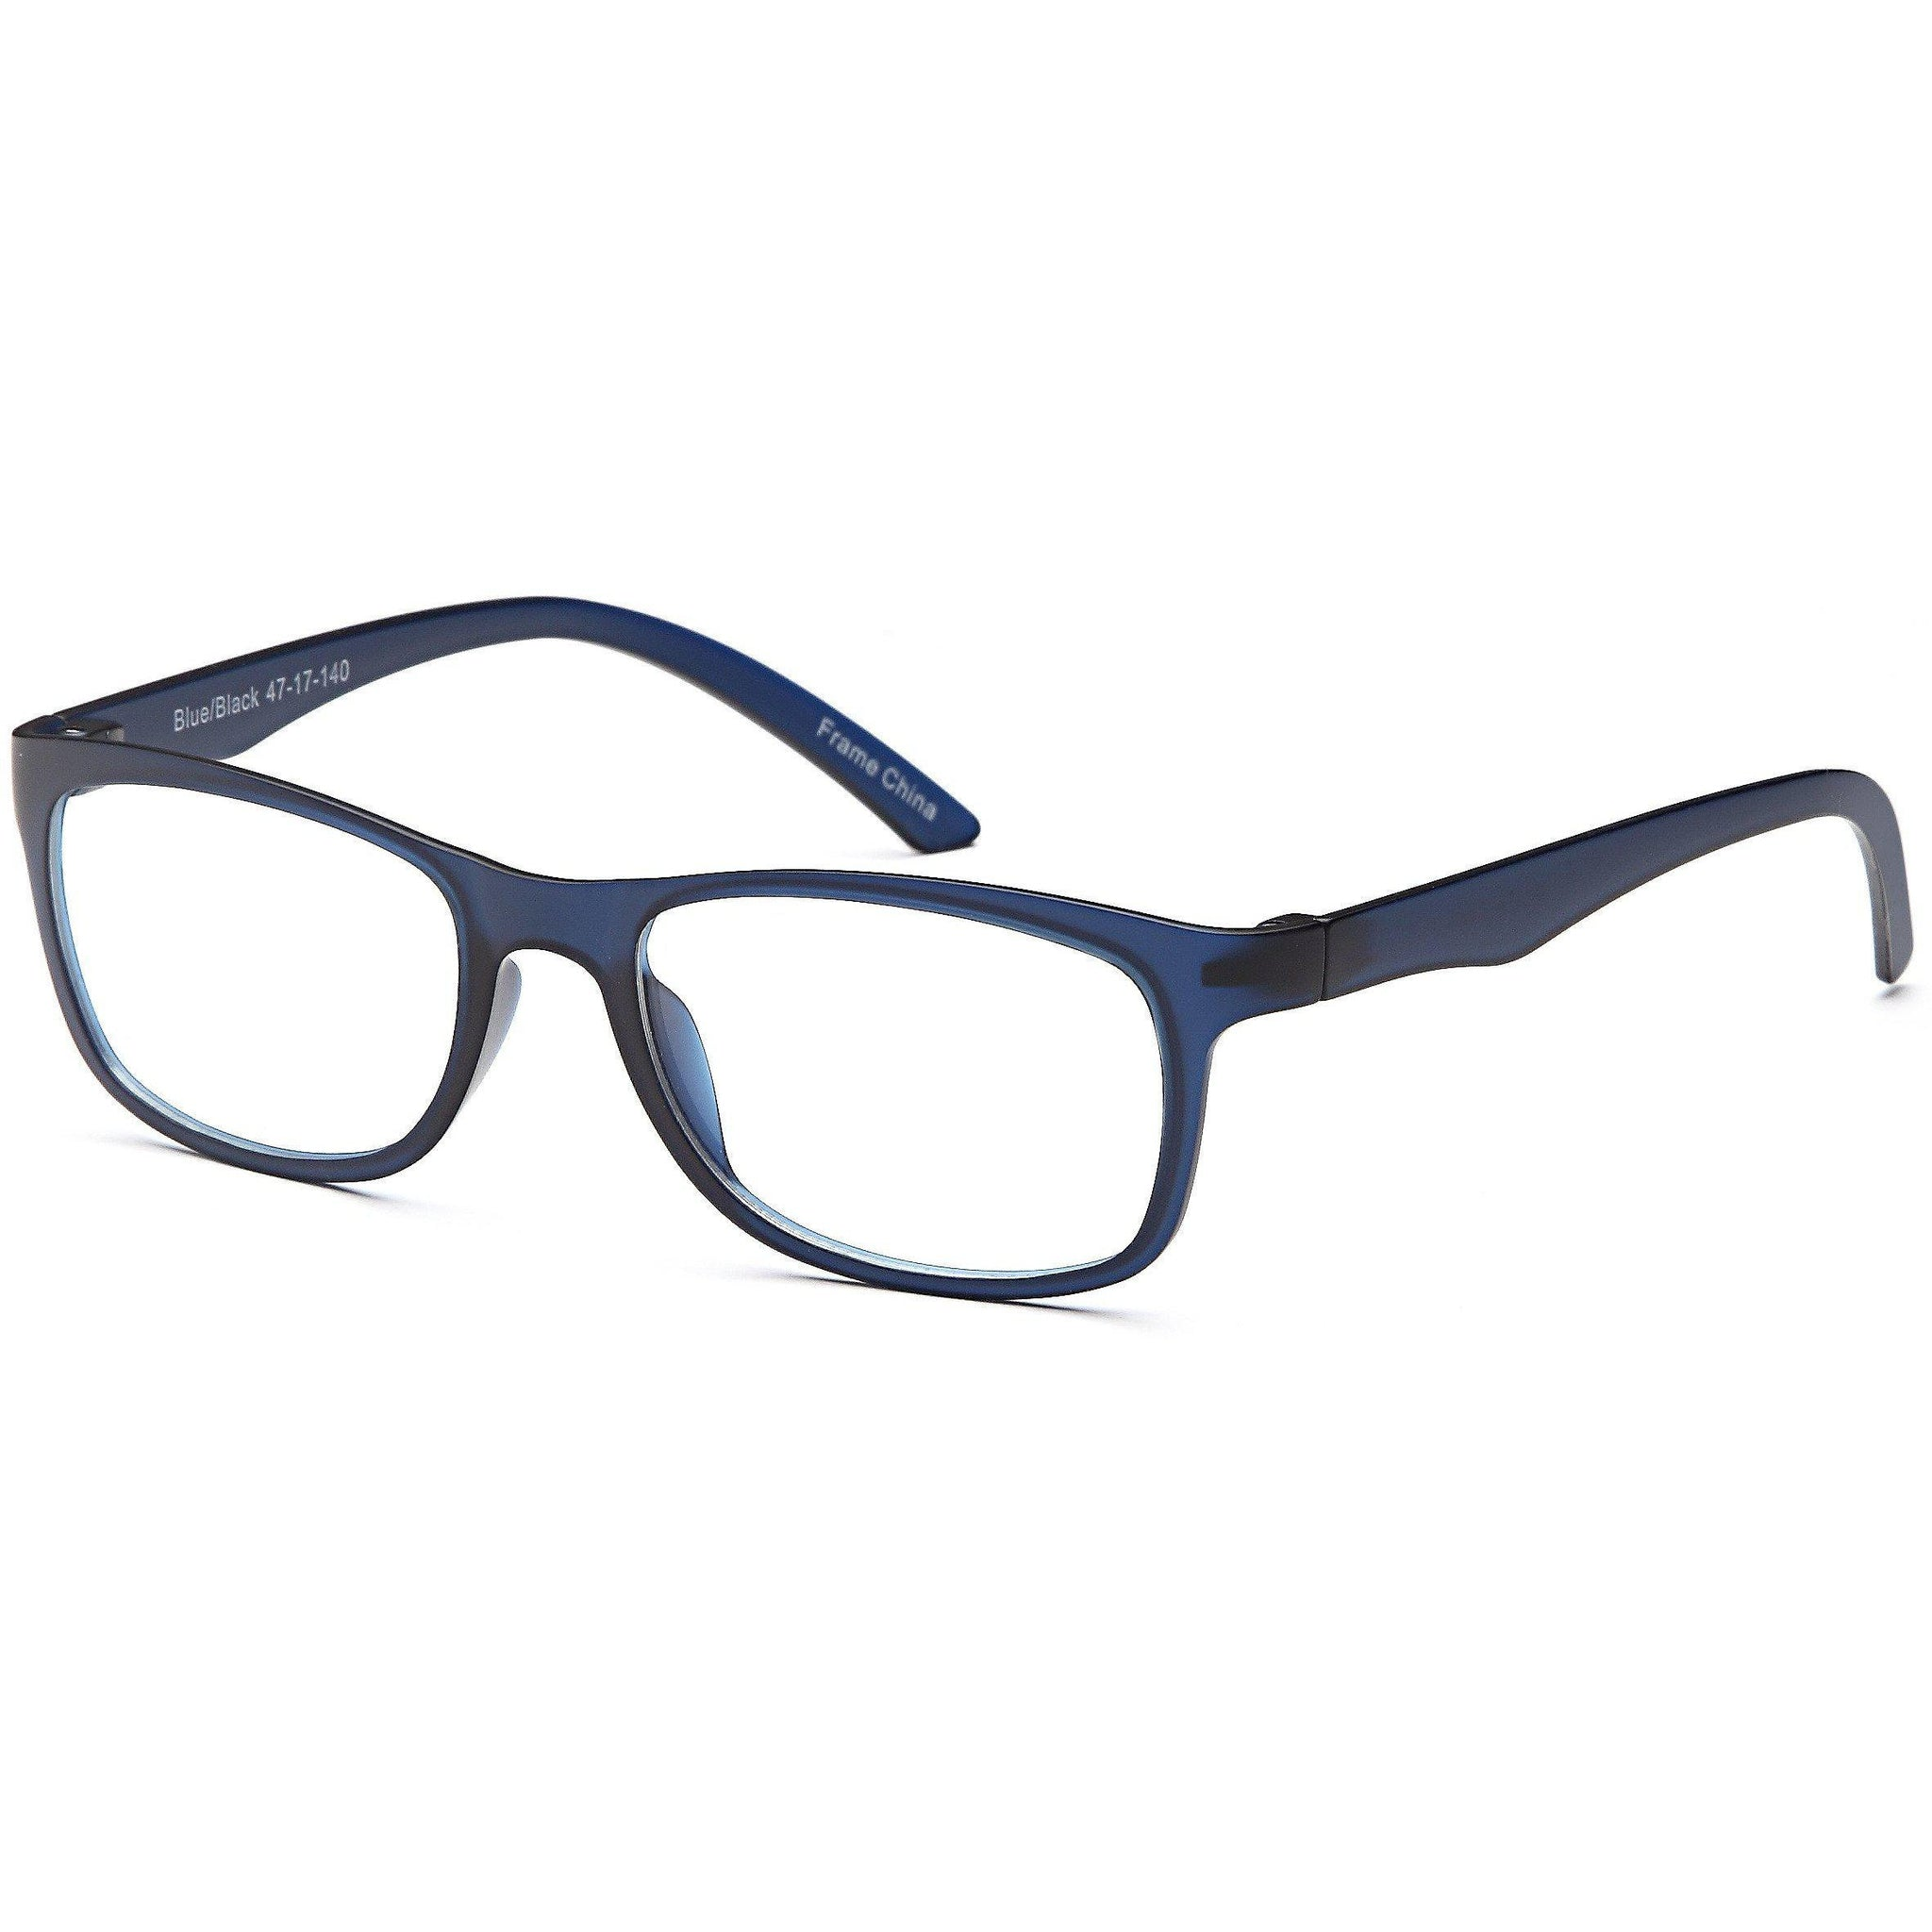 The Icons Prescription Glasses SPLIT A Eyeglasses Frame